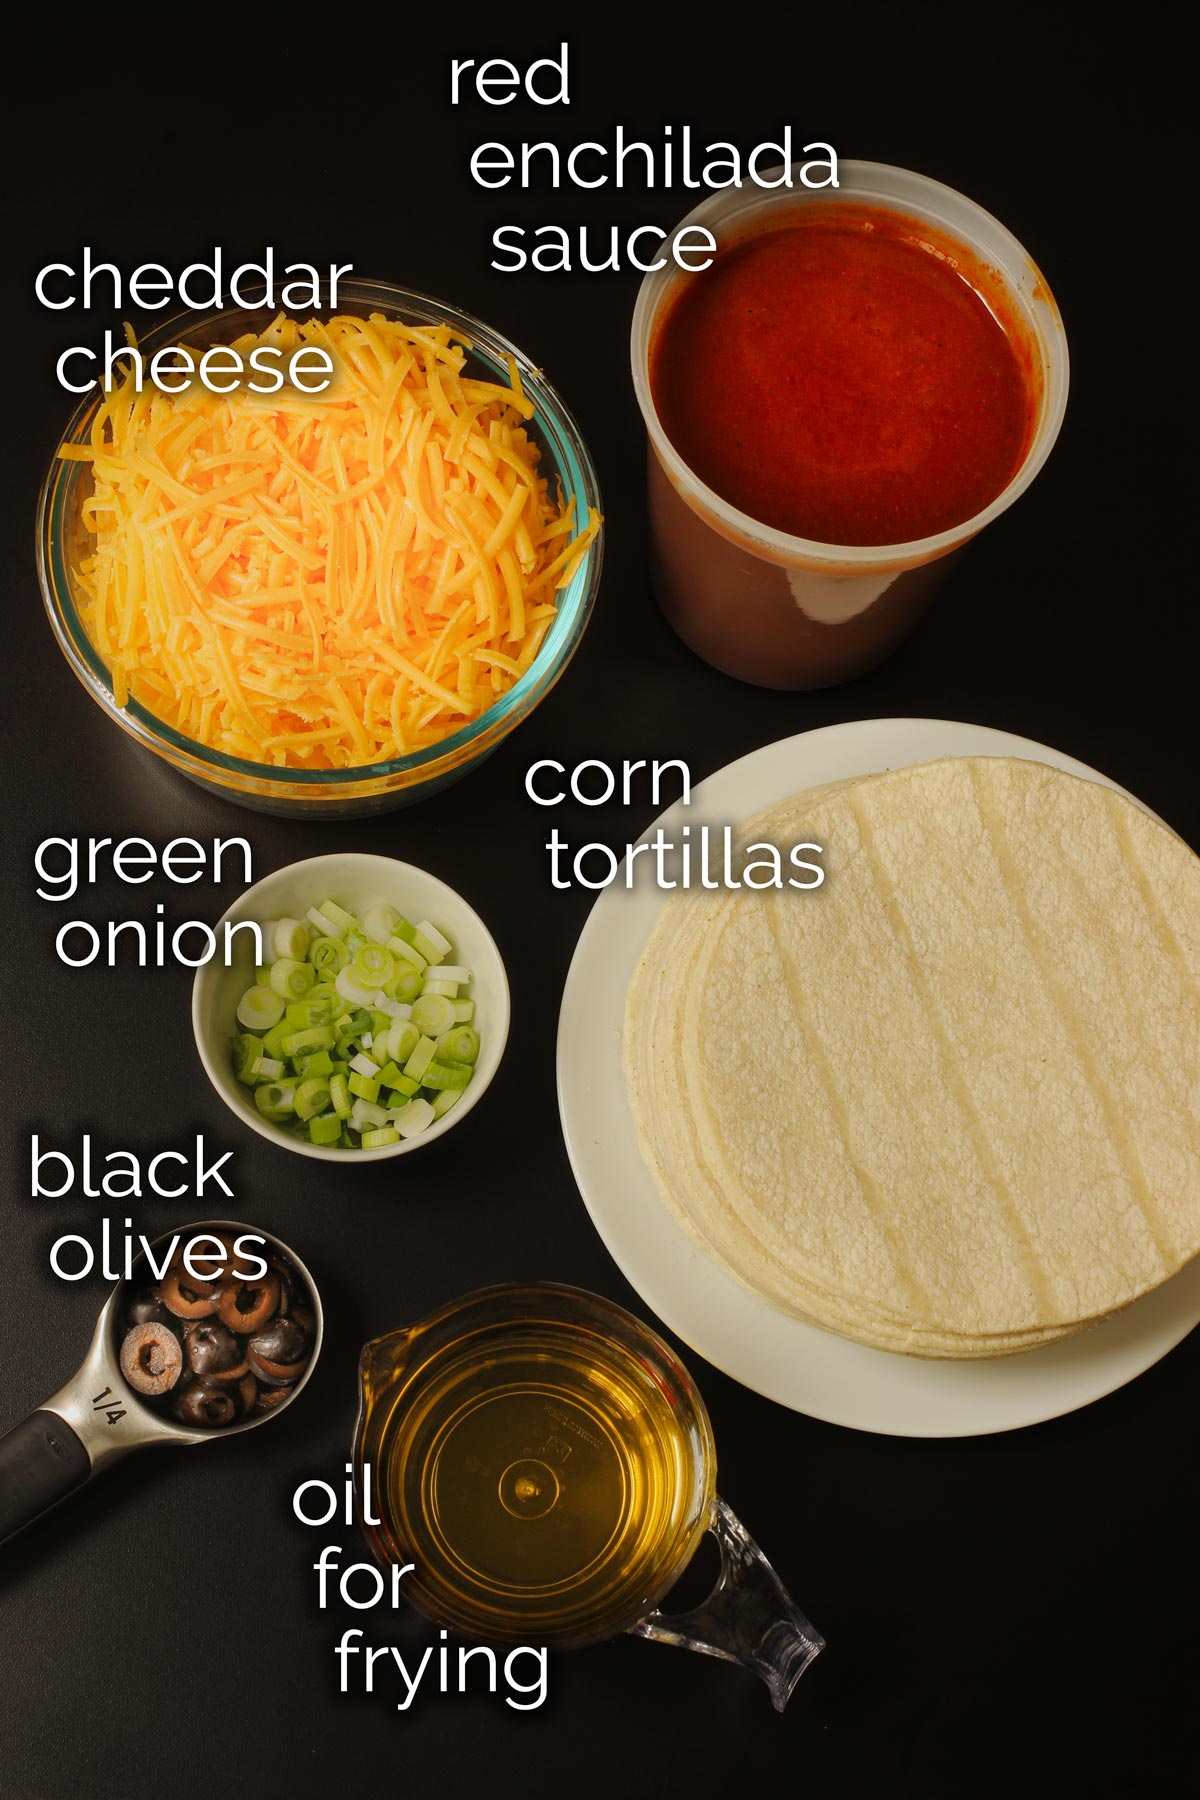 ingredients for cheese enchiladas laid out on table.